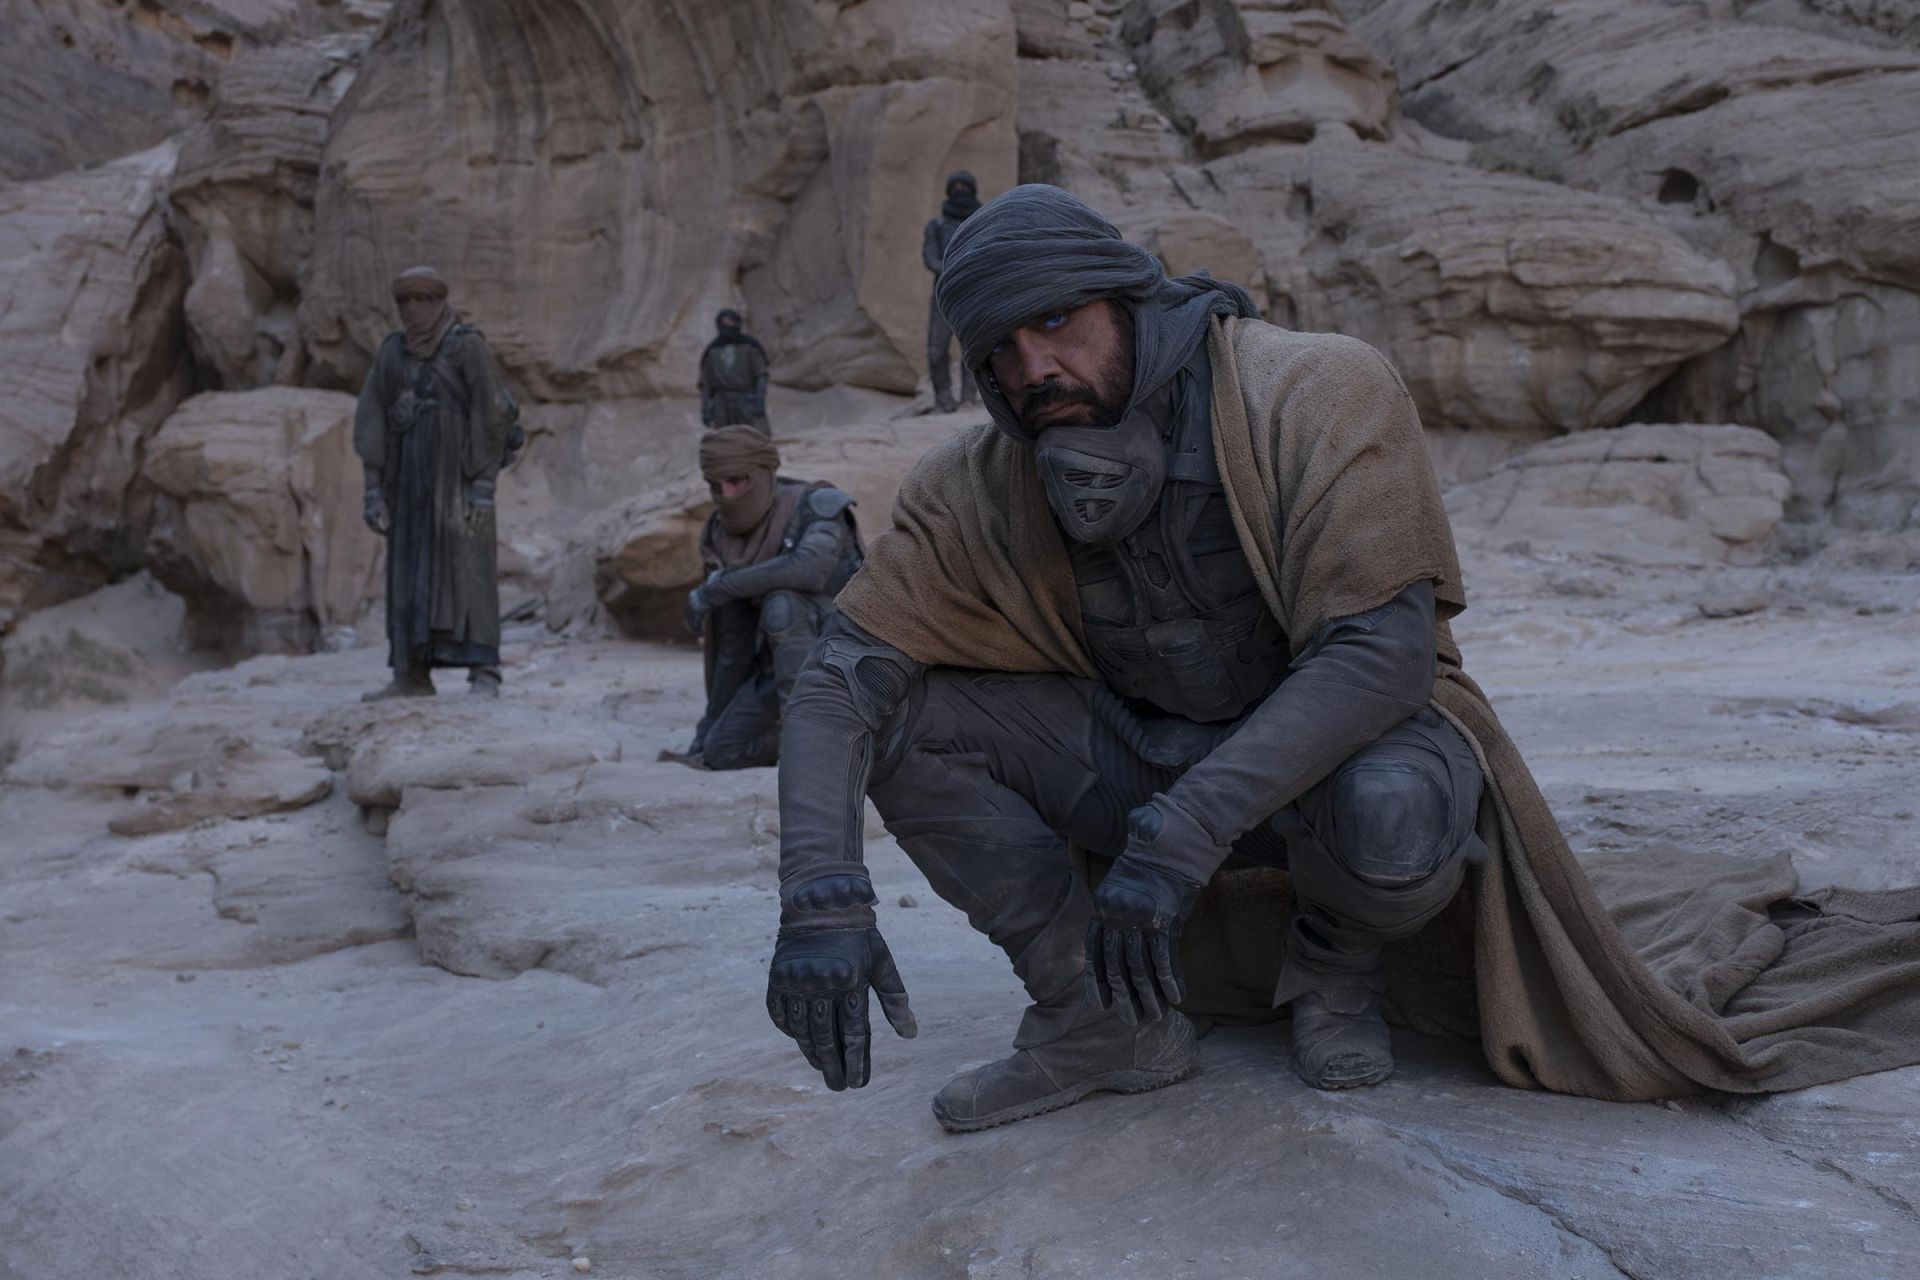 First Look at the Cast of the Upcoming Dune Adaptation | Javier bardem, Oscar isaac, Dune